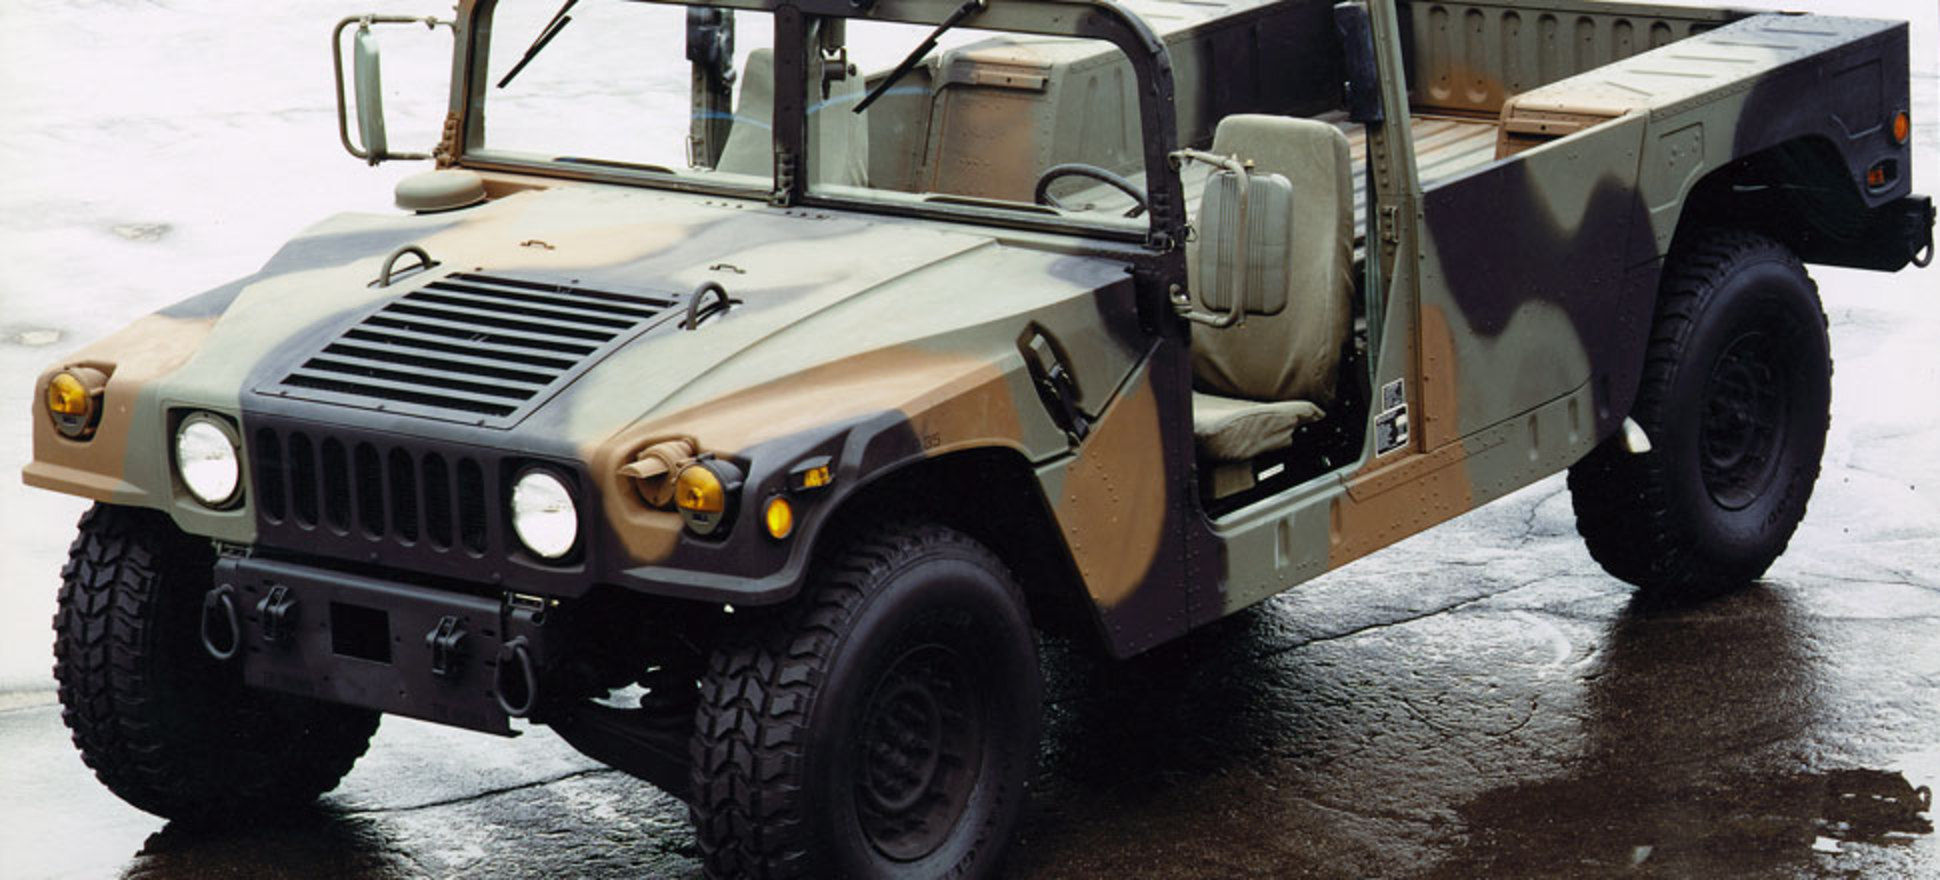 A2 Series | HMMWV (Humvee) | AM General LLC - Mobility solutions ...